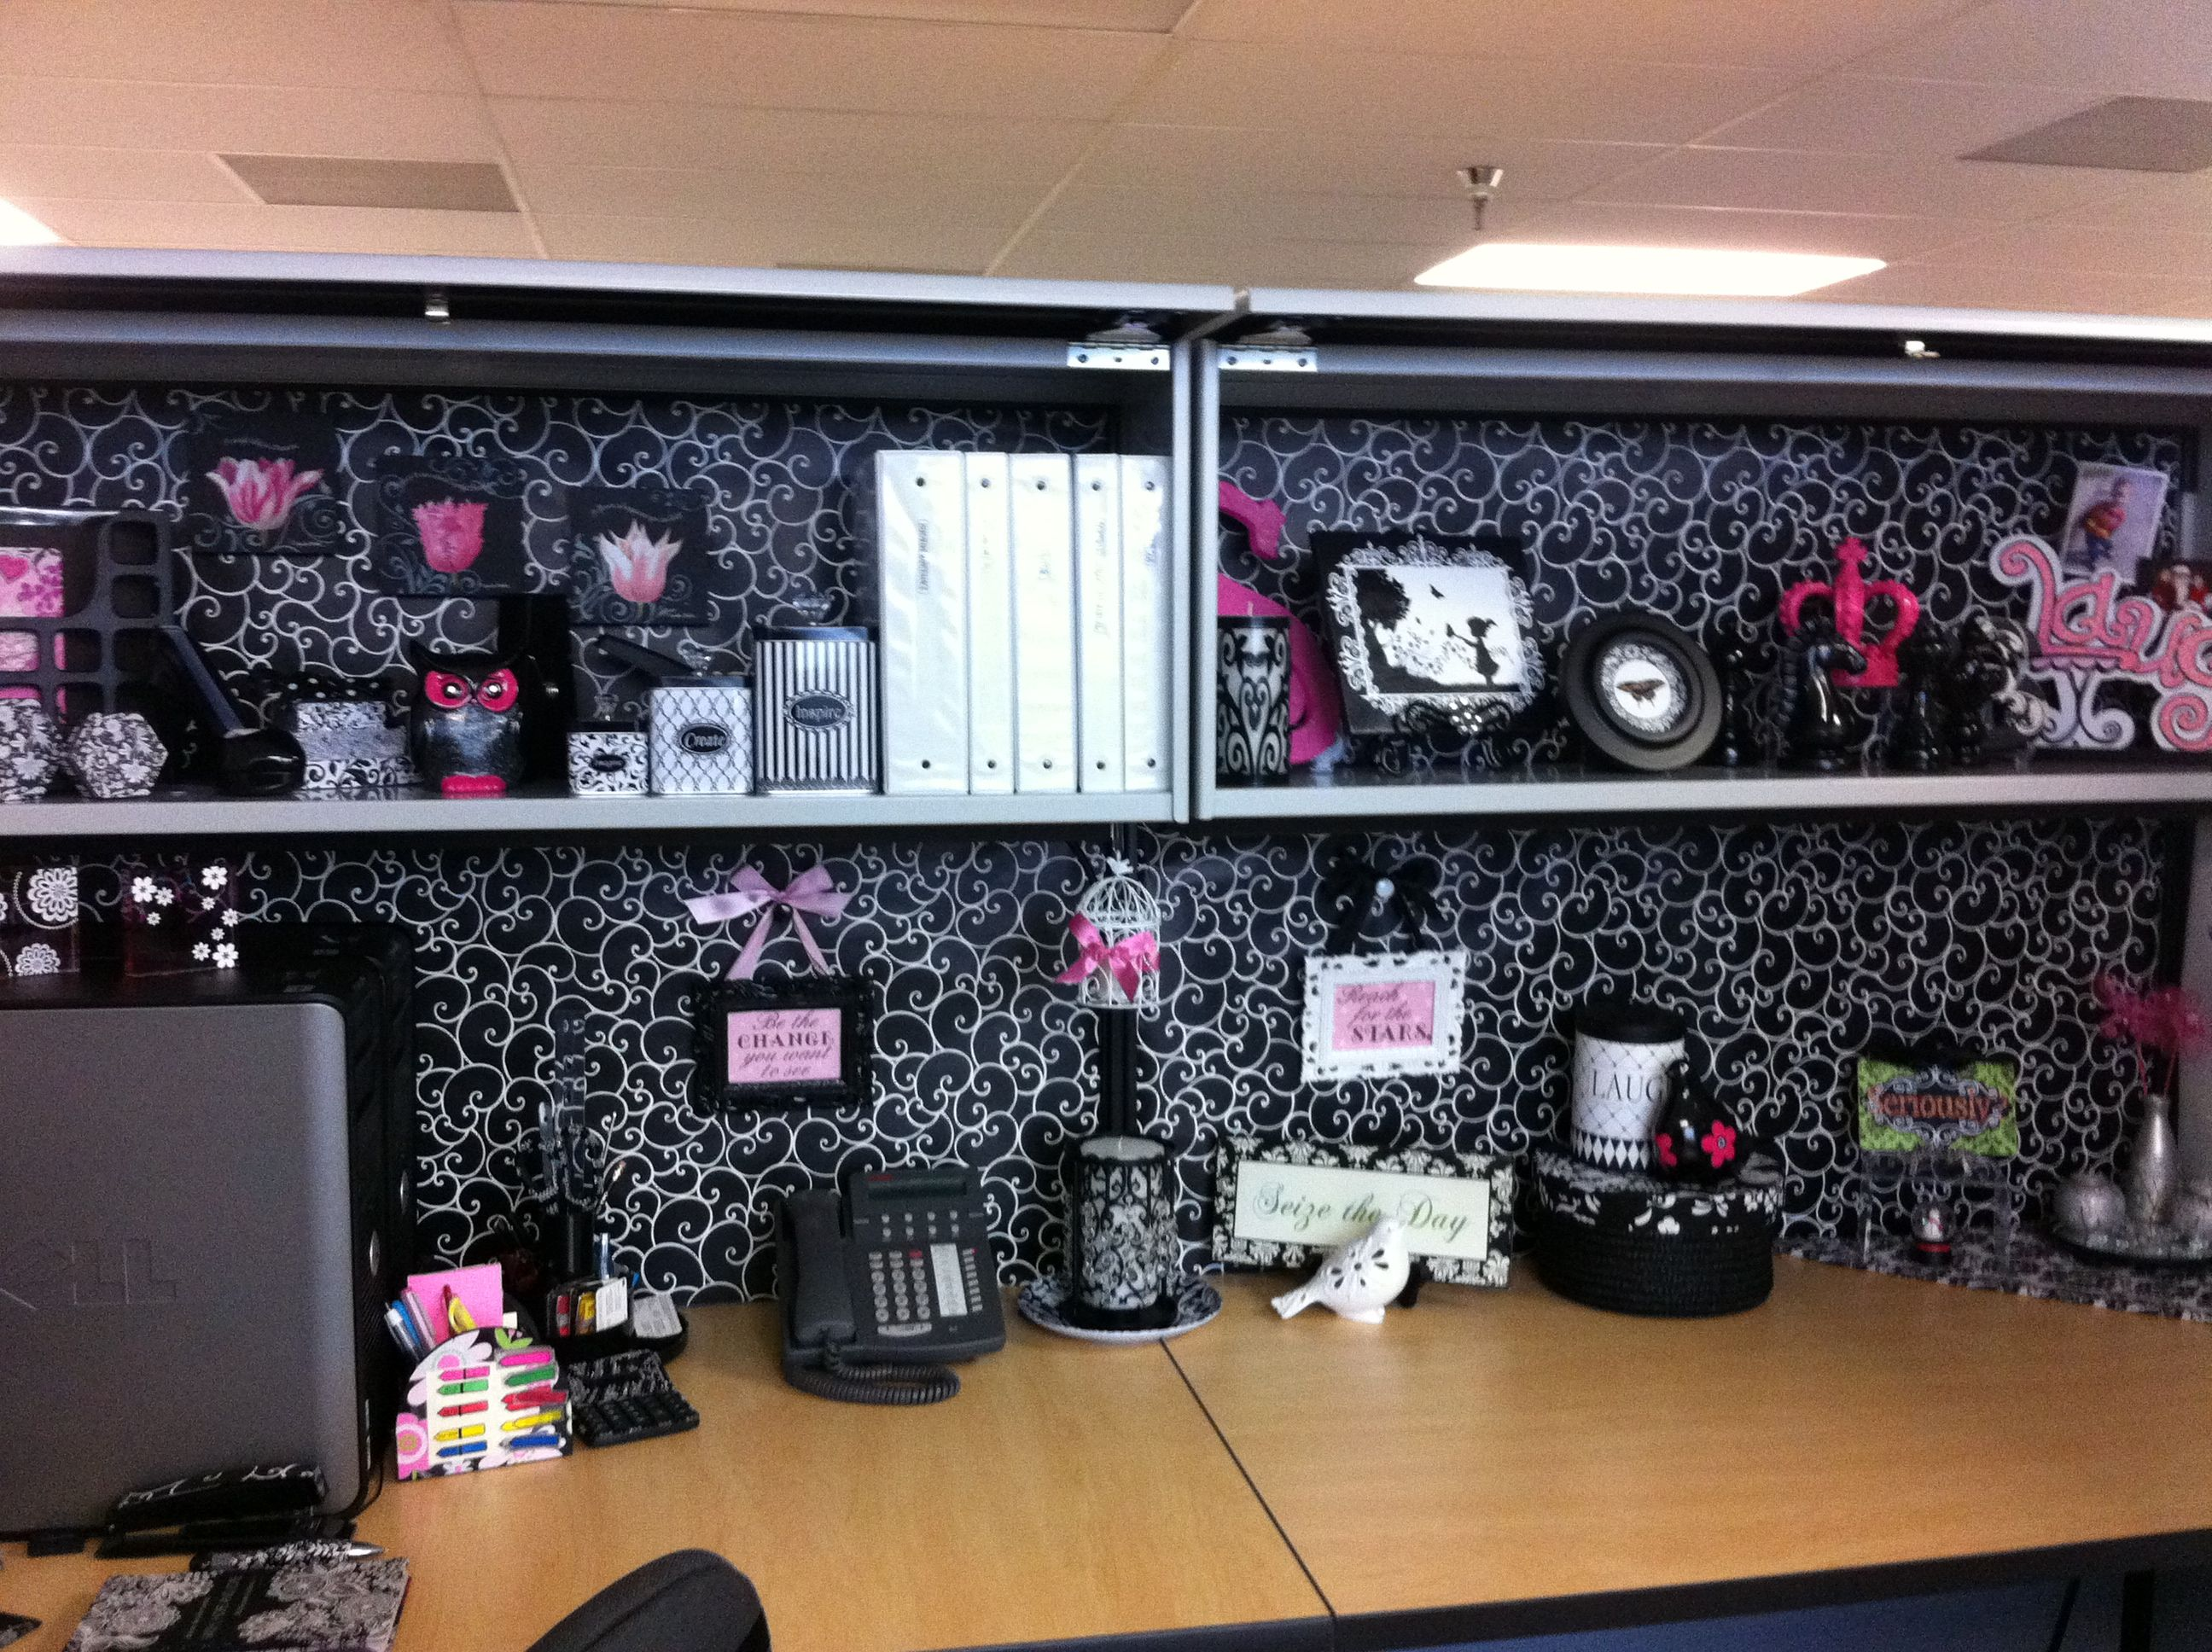 Office cubicle decorating cubicle design cubicle - Work office decorating ideas pictures ...